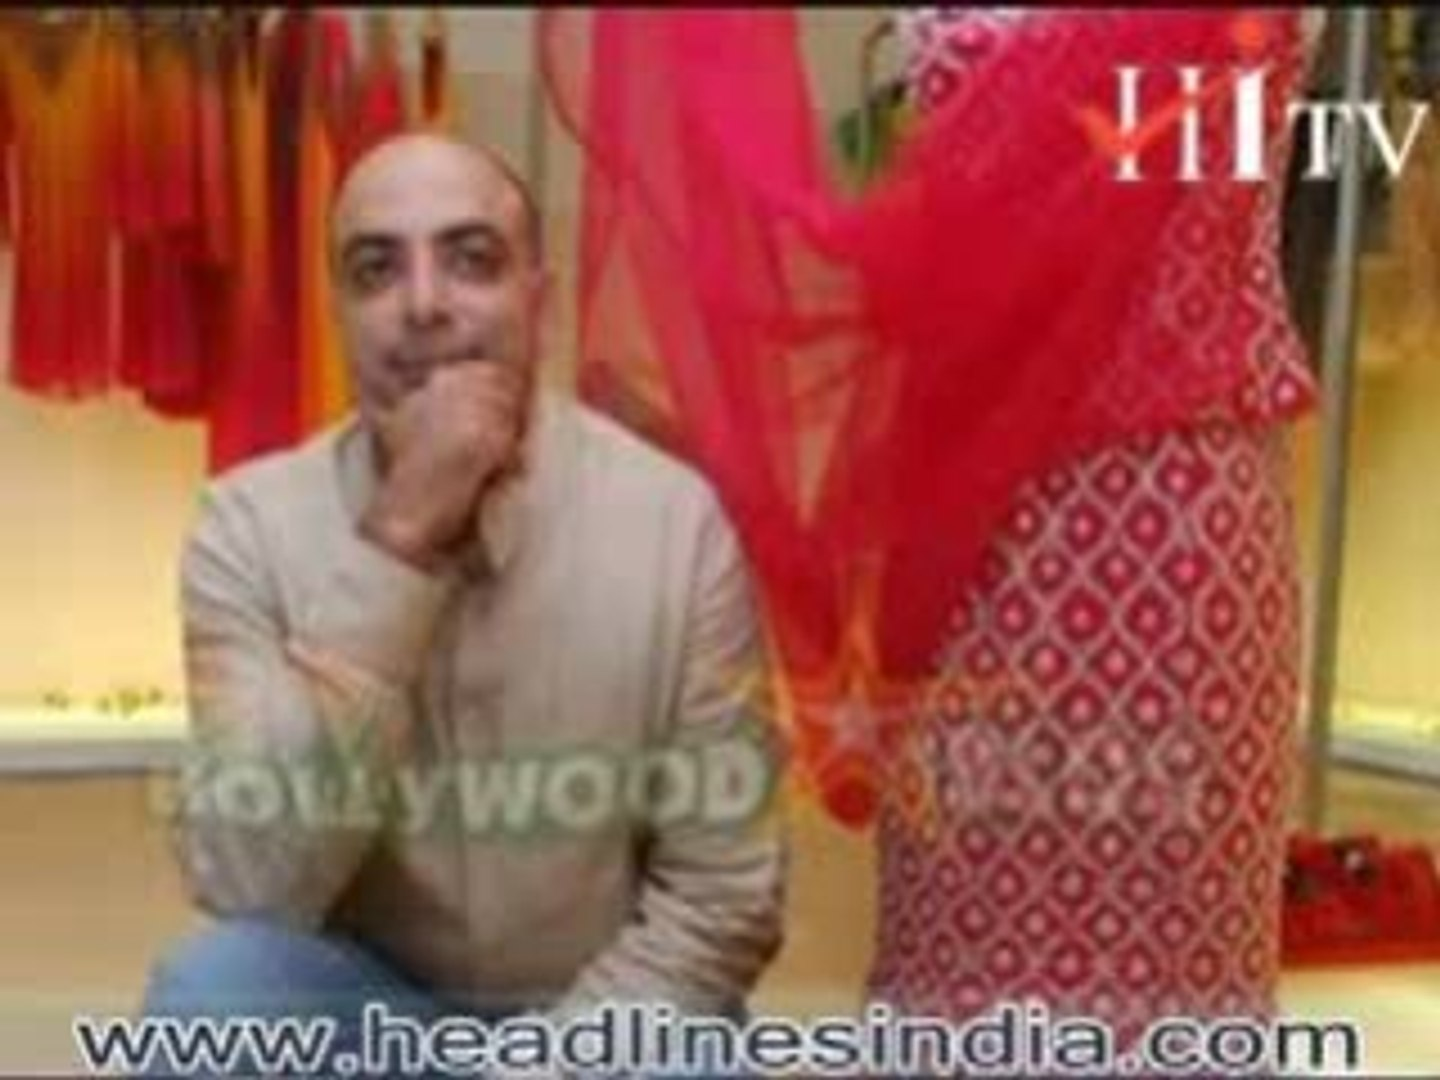 HDIL India Fashion Week starts, India News Video